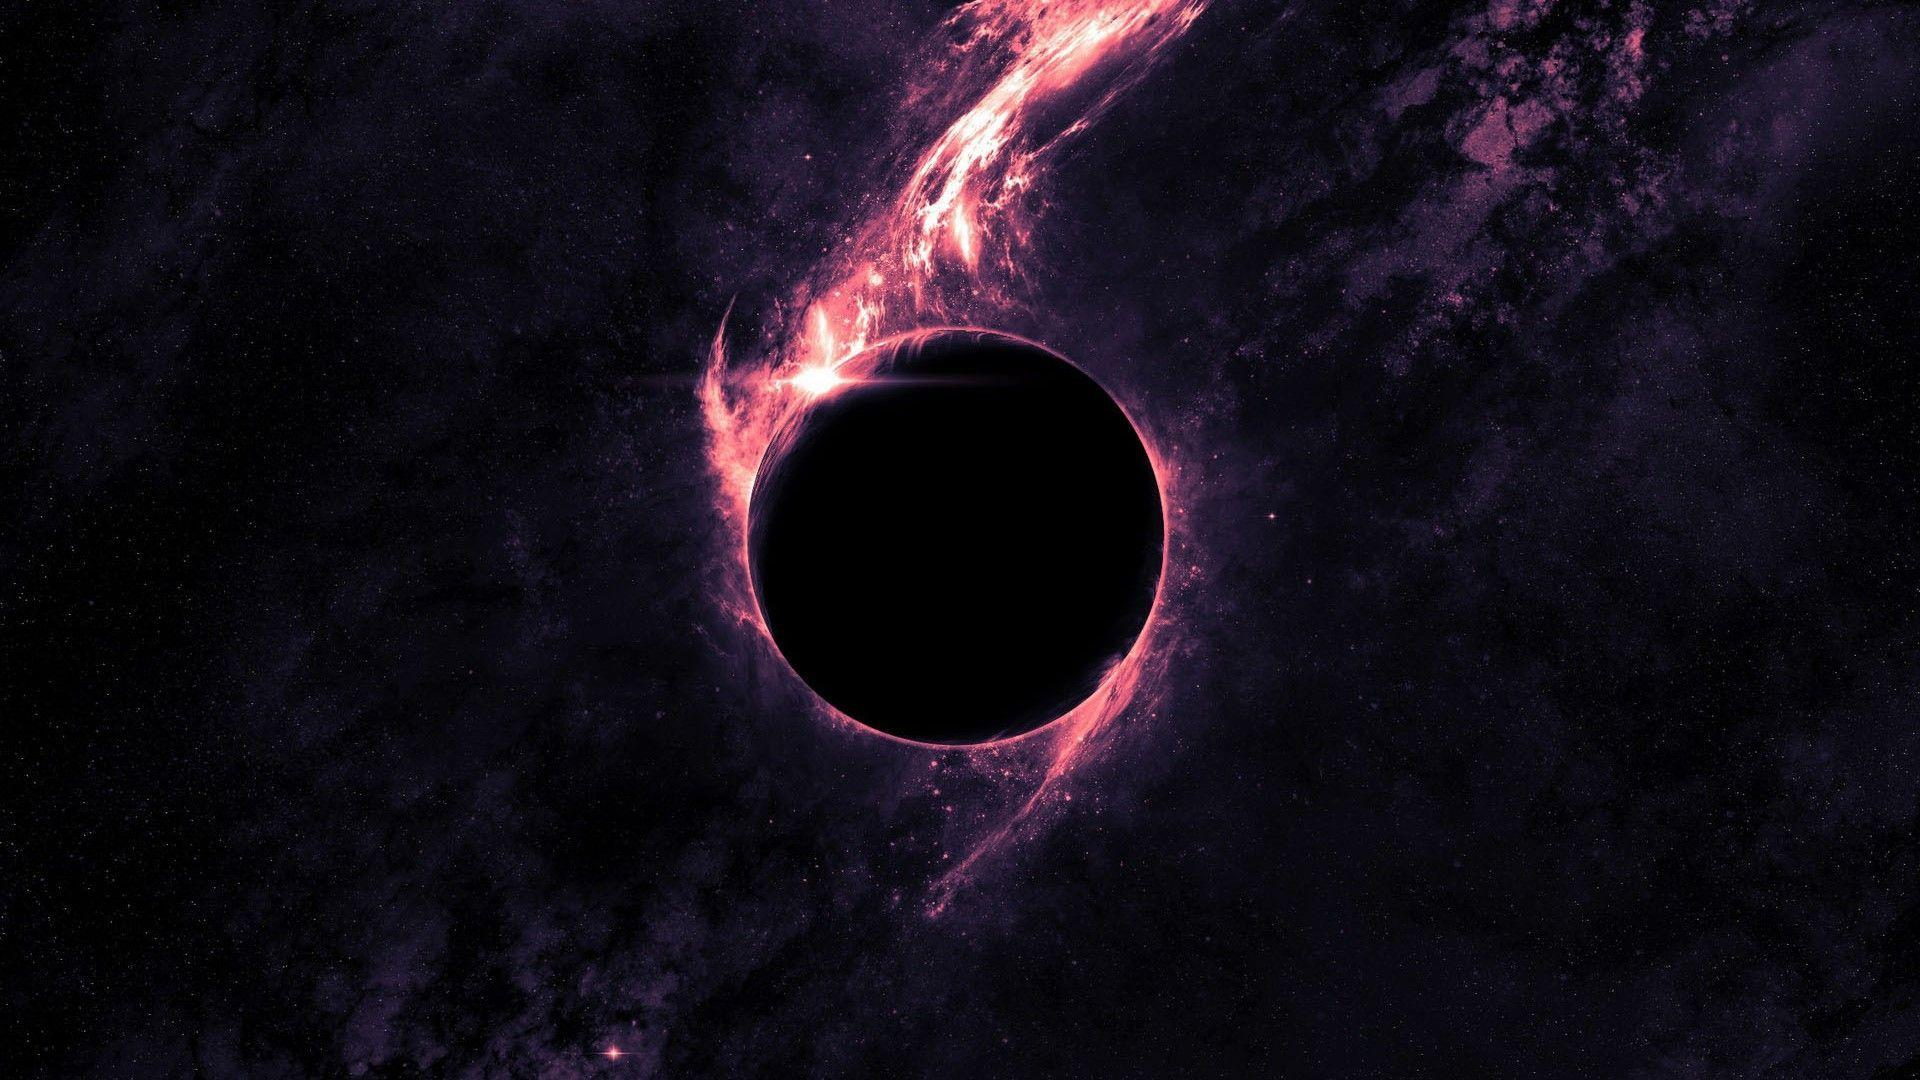 black hole phone background - photo #3